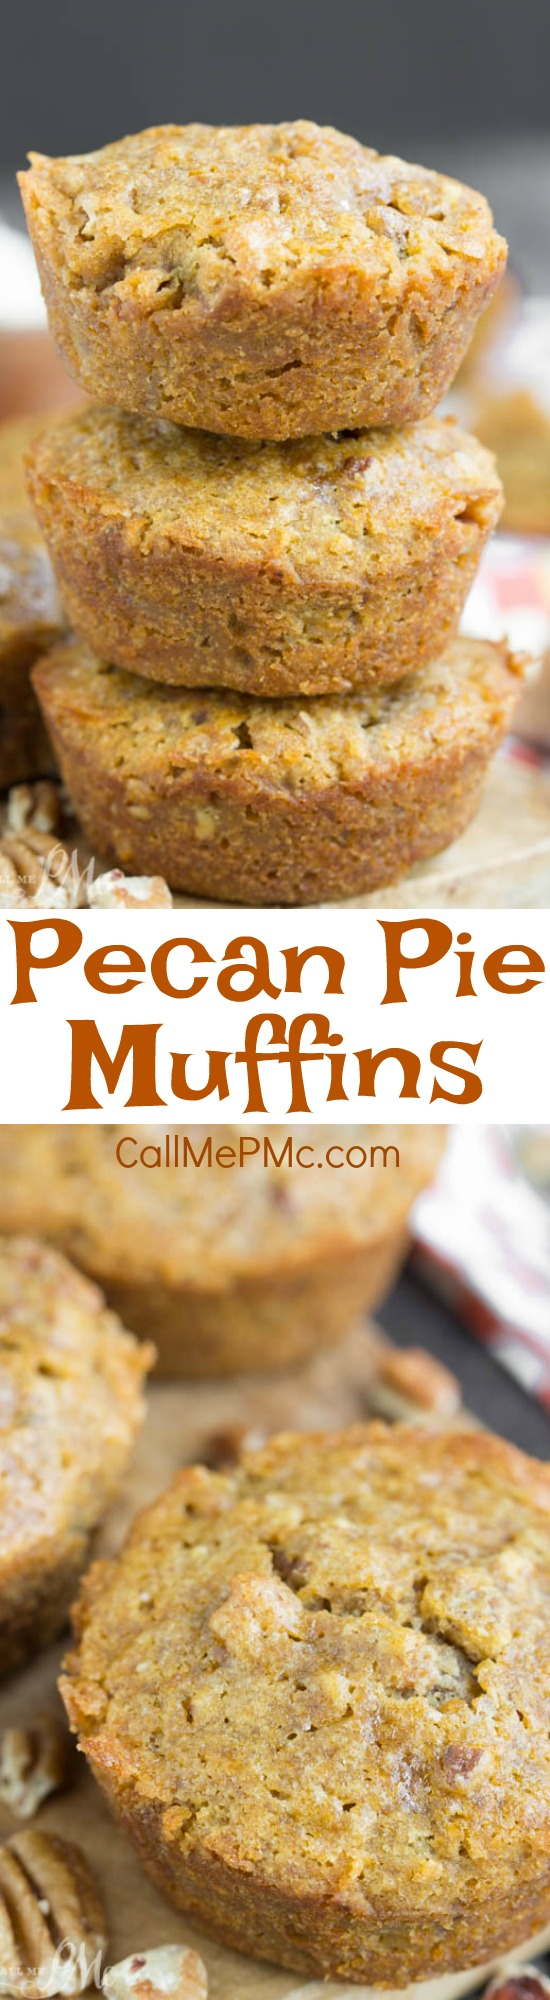 Delicious Pecan Pie Muffins recipe - have that amazing pecan pie flavor, but in a chewy little muffin. They're great for breakfast, snacking, and even dessert!!